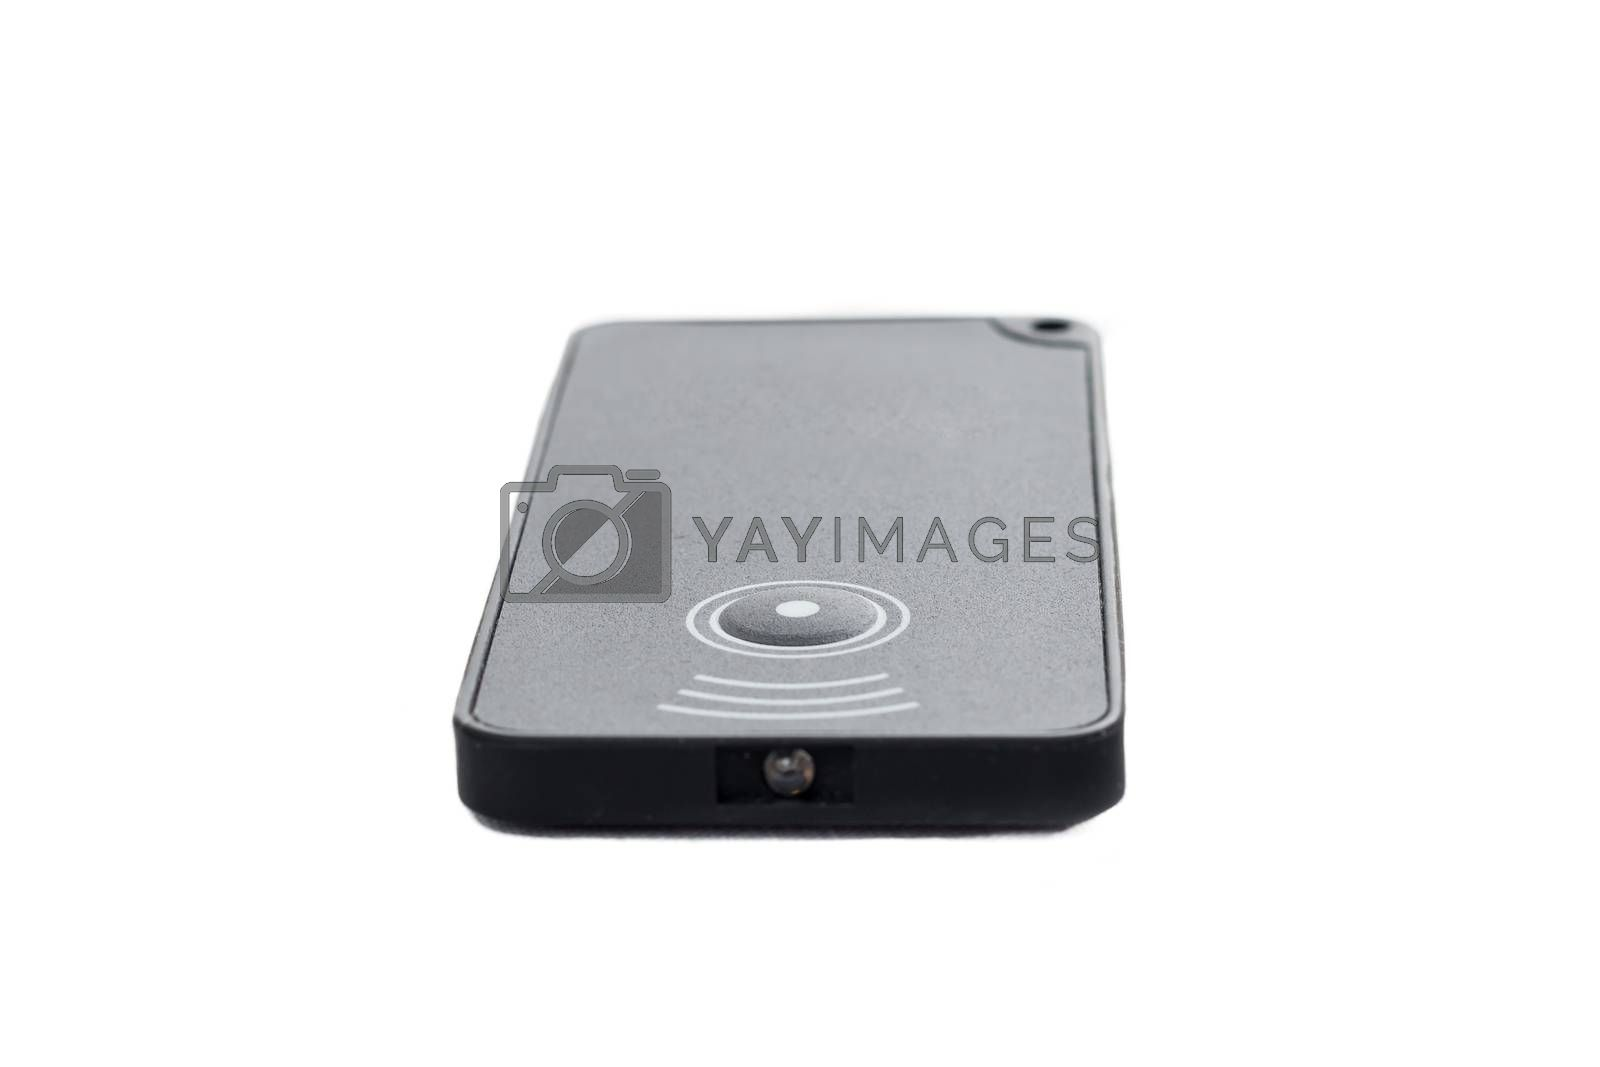 infrared remote control with a button on white background  in studio